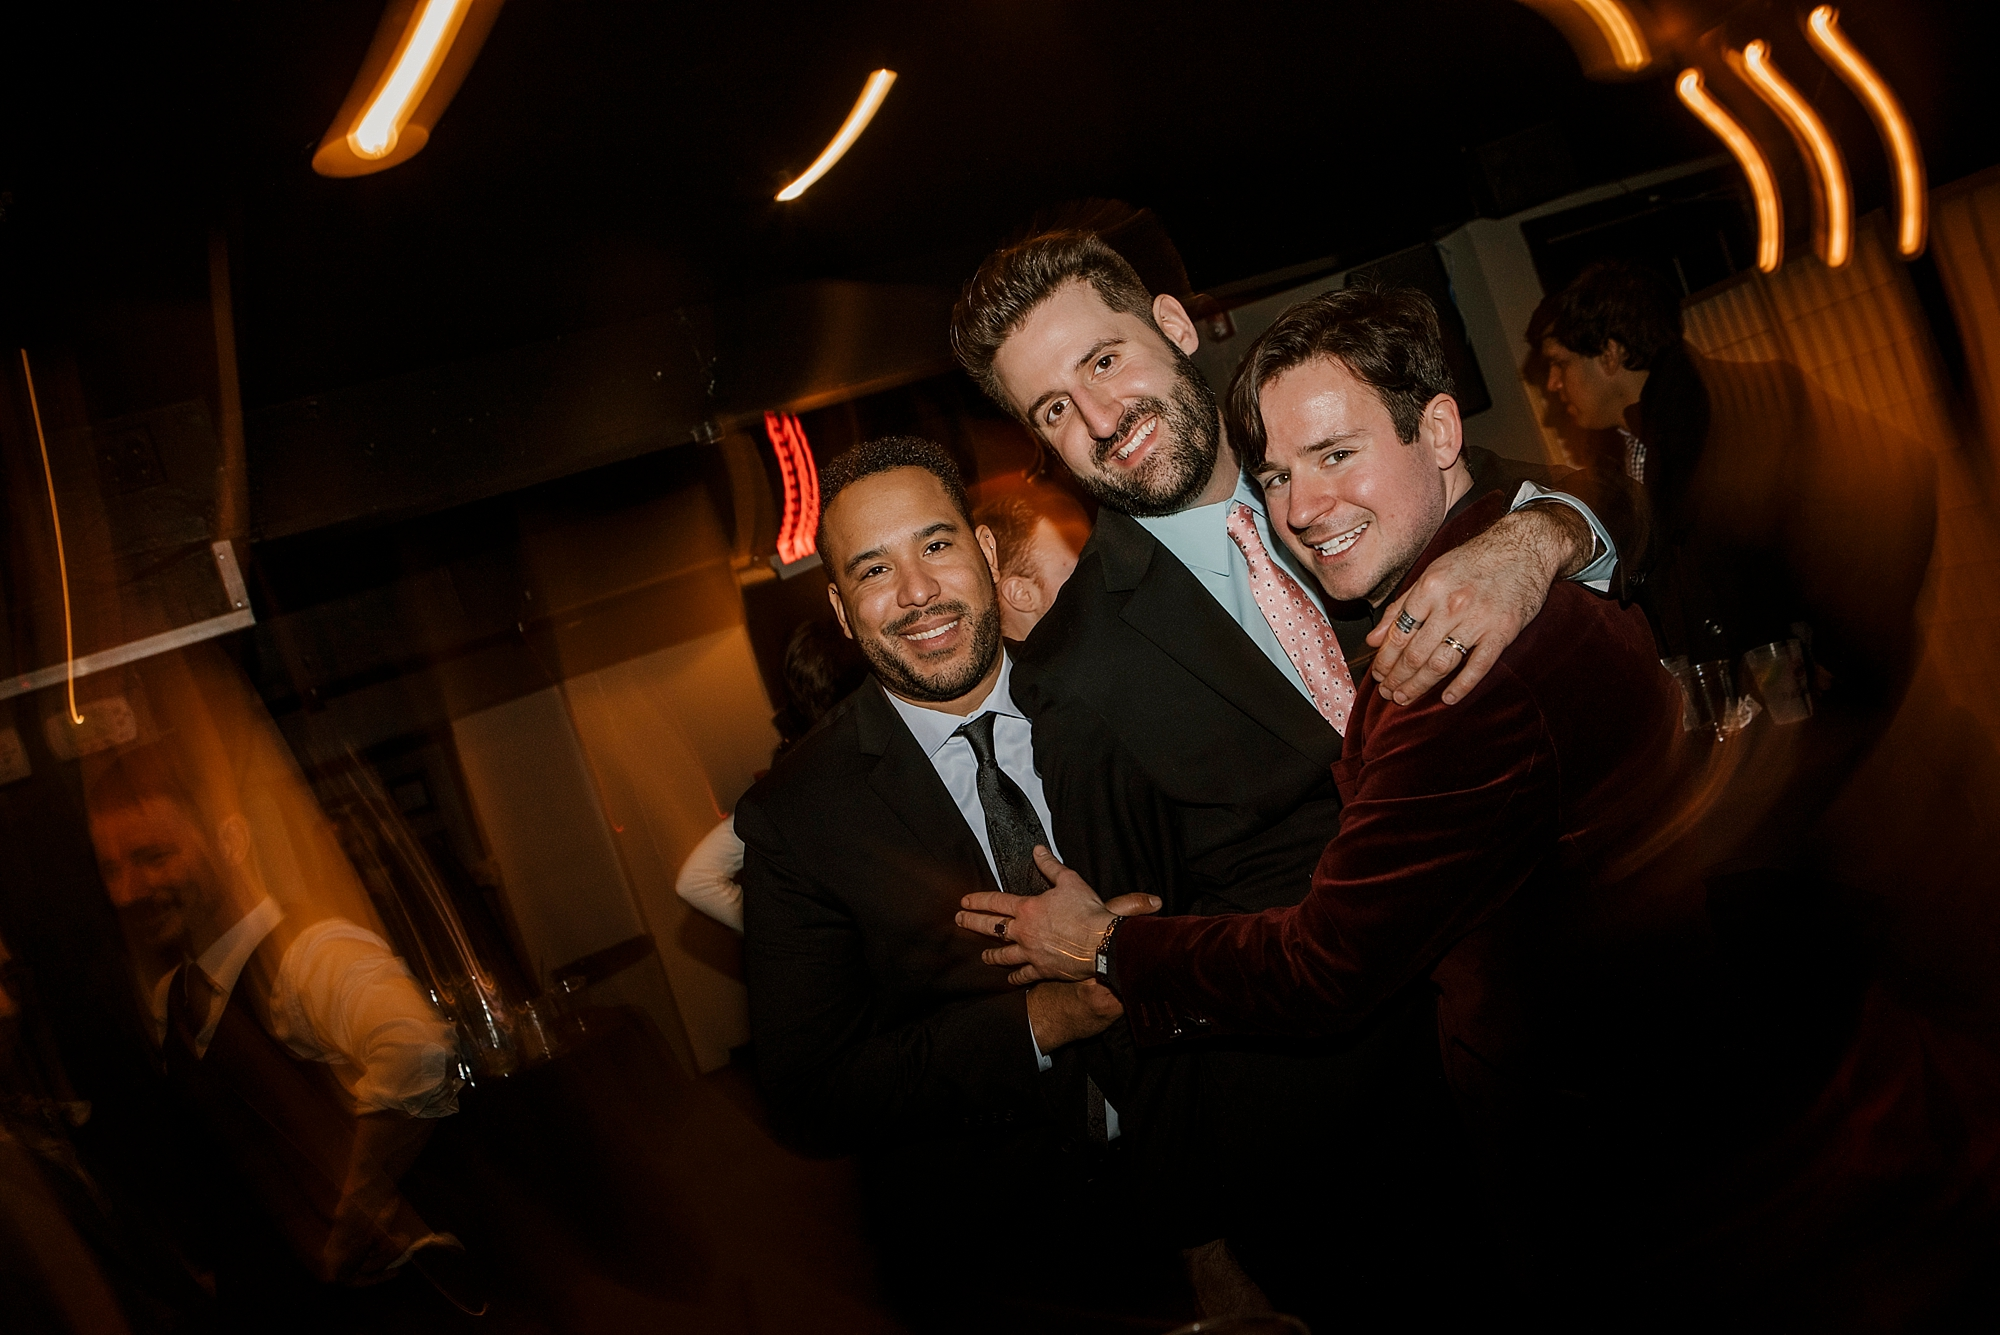 Joe_Mac_Creative_Philadelphia_Philly_LGBT_Gay_Engagement_Wedding_Photography__0160.jpg